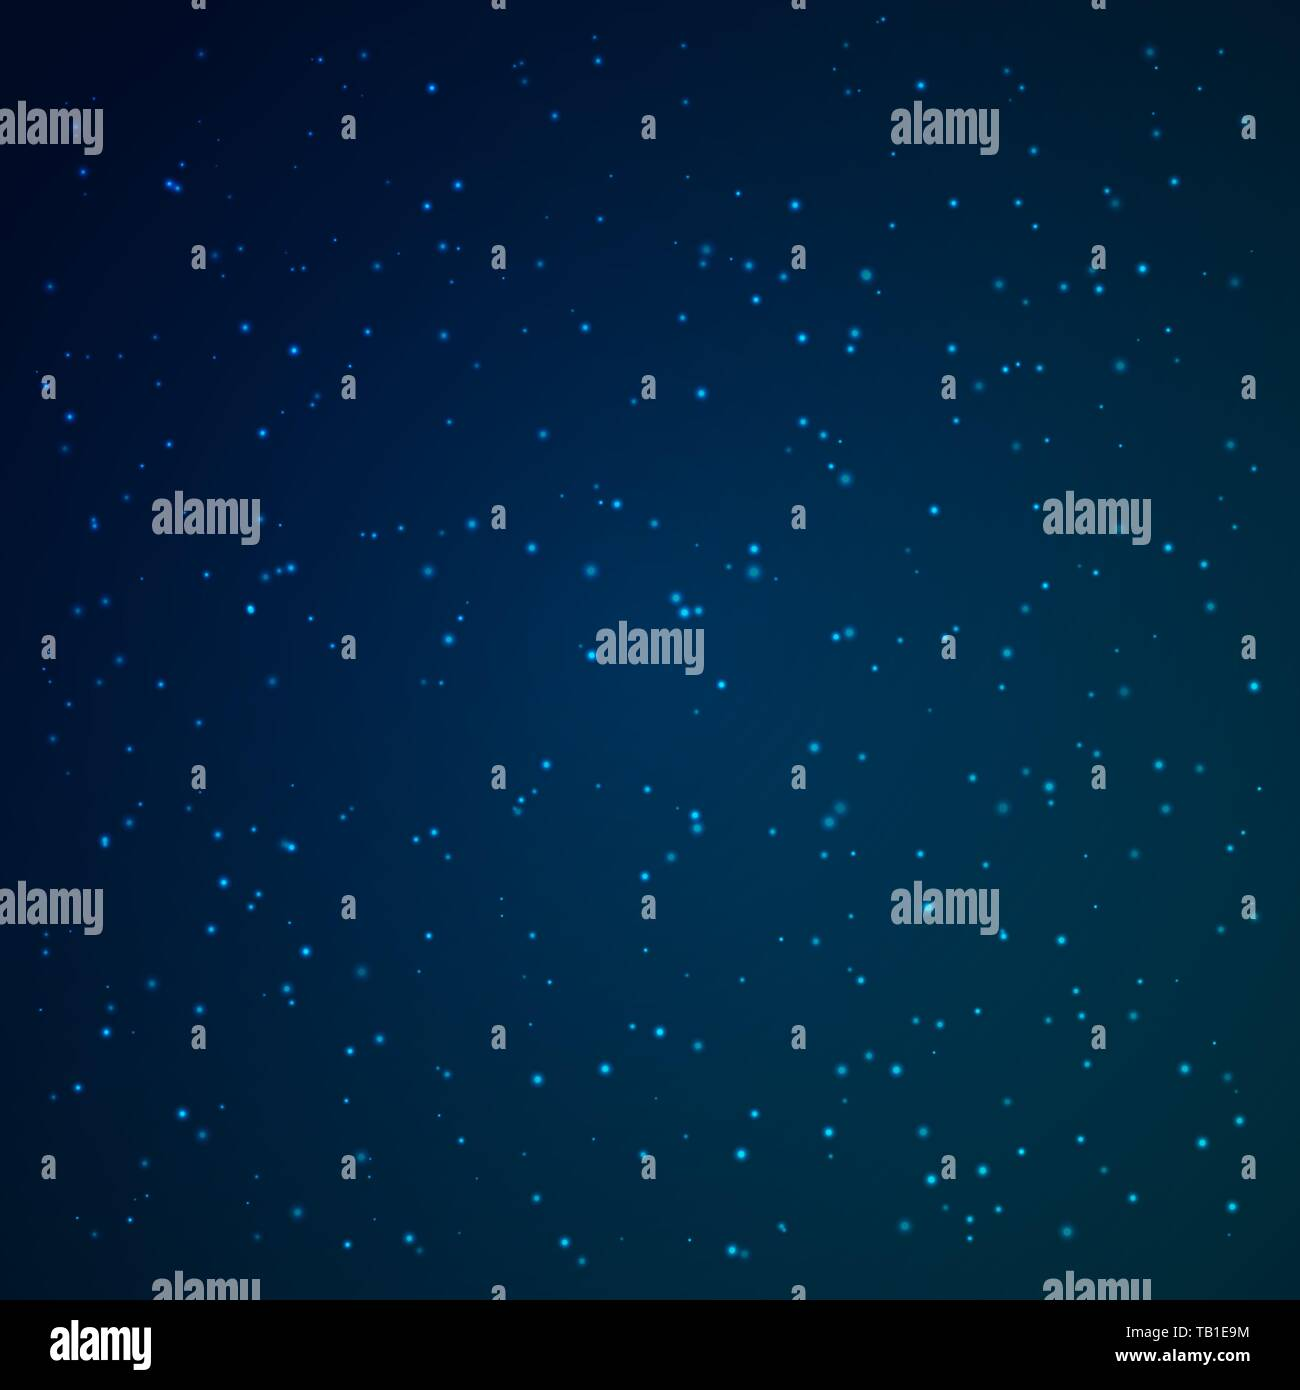 Space background. Vector illustration. Shiny Stardust Wallpaper - Stock Vector